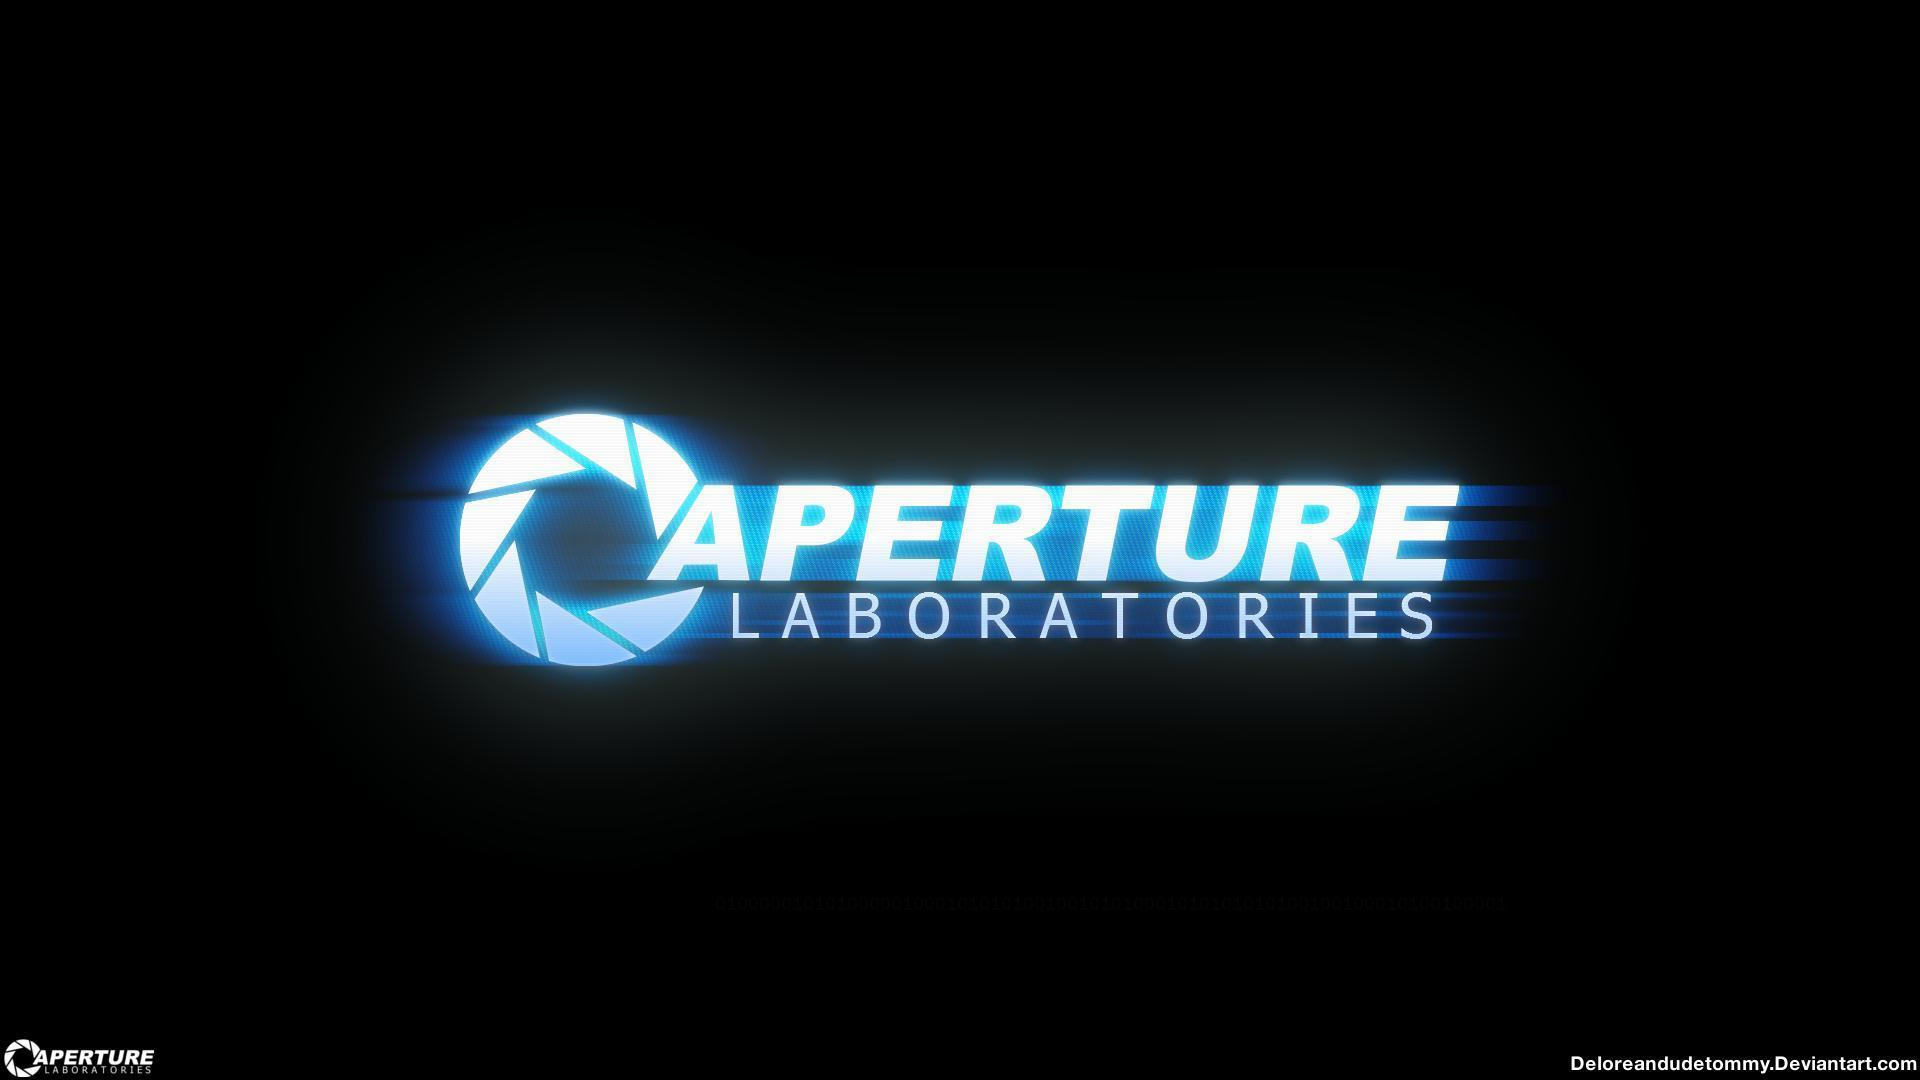 Aperture Science Backgrounds - Wallpaper CaveAperture Science Innovators Wallpaper